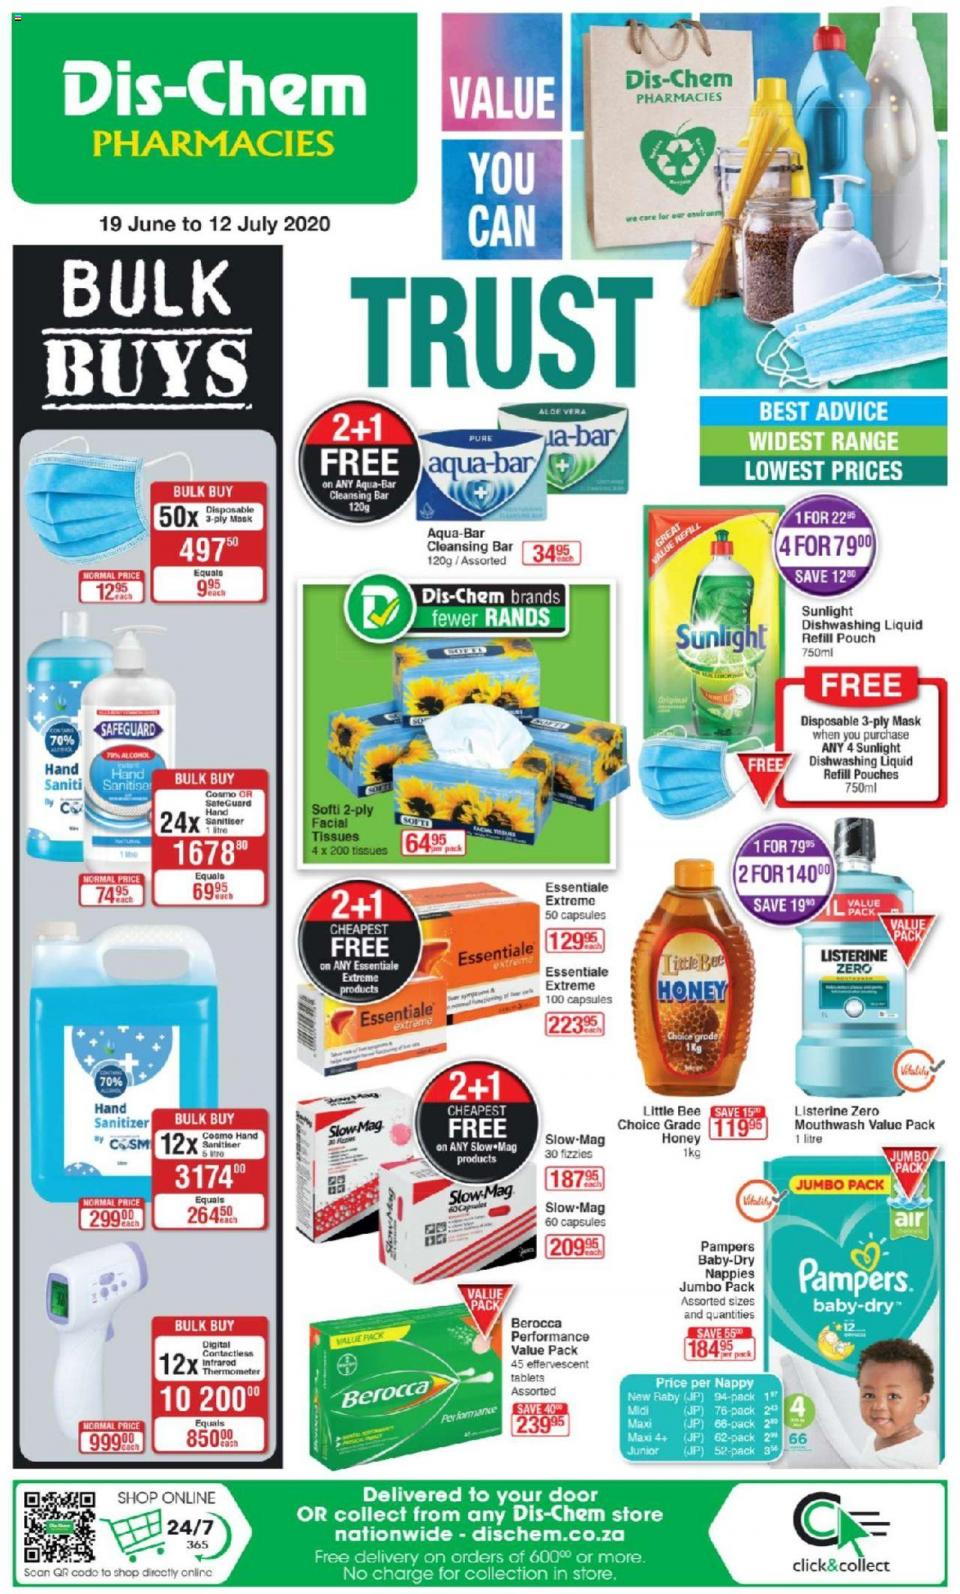 dischem specials value you can trust 19 june 2020